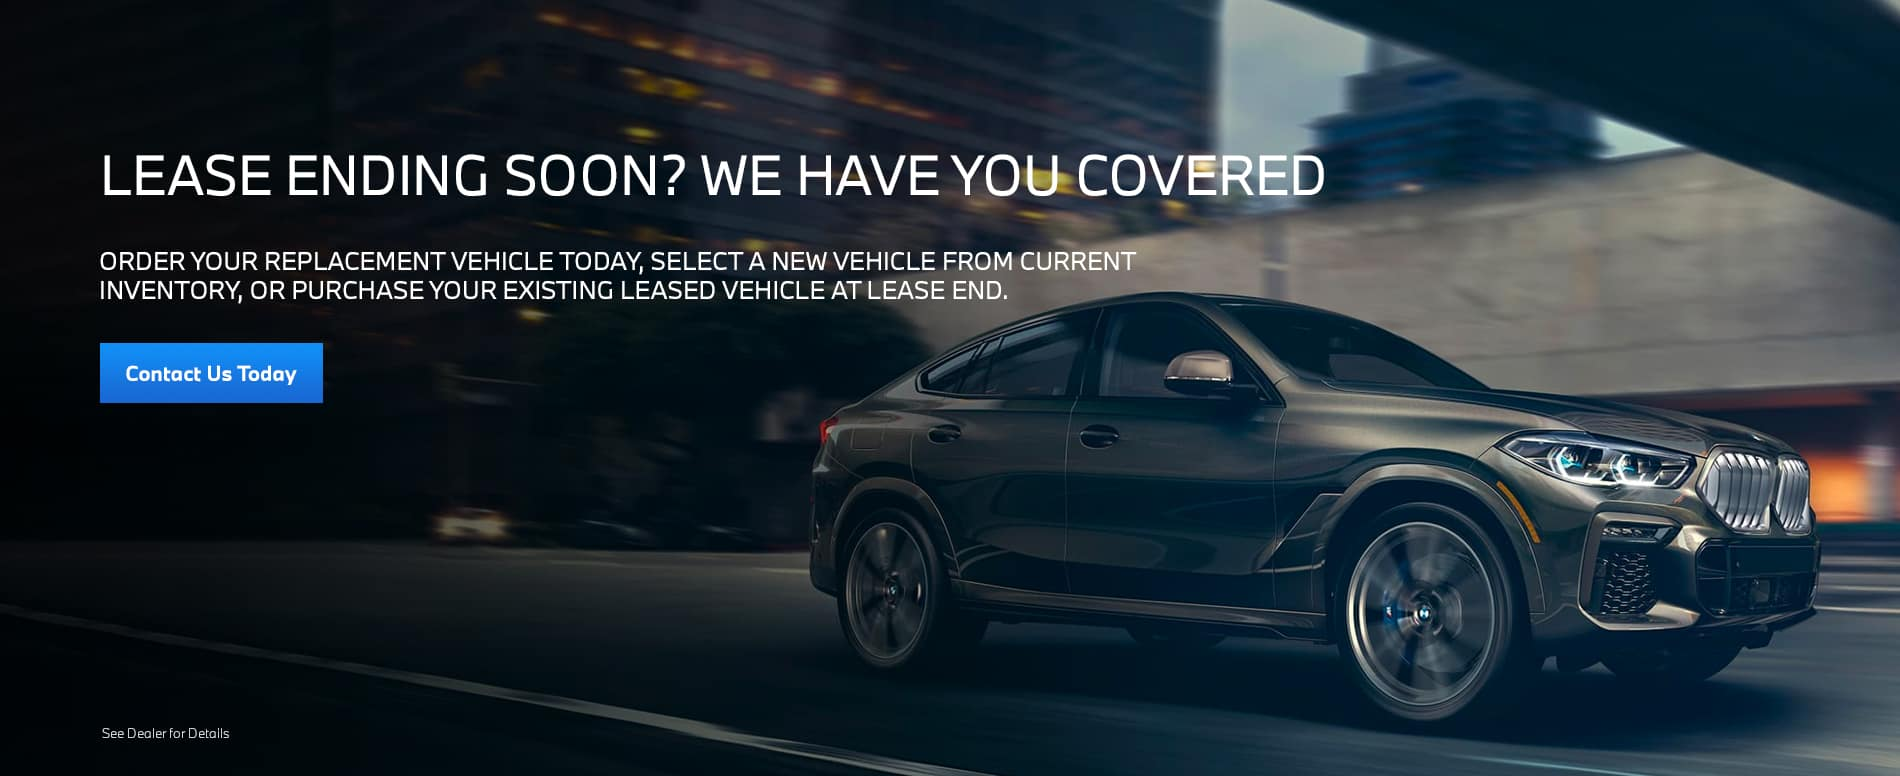 Order your replacement vehicle today, select a new vehicle from current inventory, or purchase your existing leased vehicle at lease end.